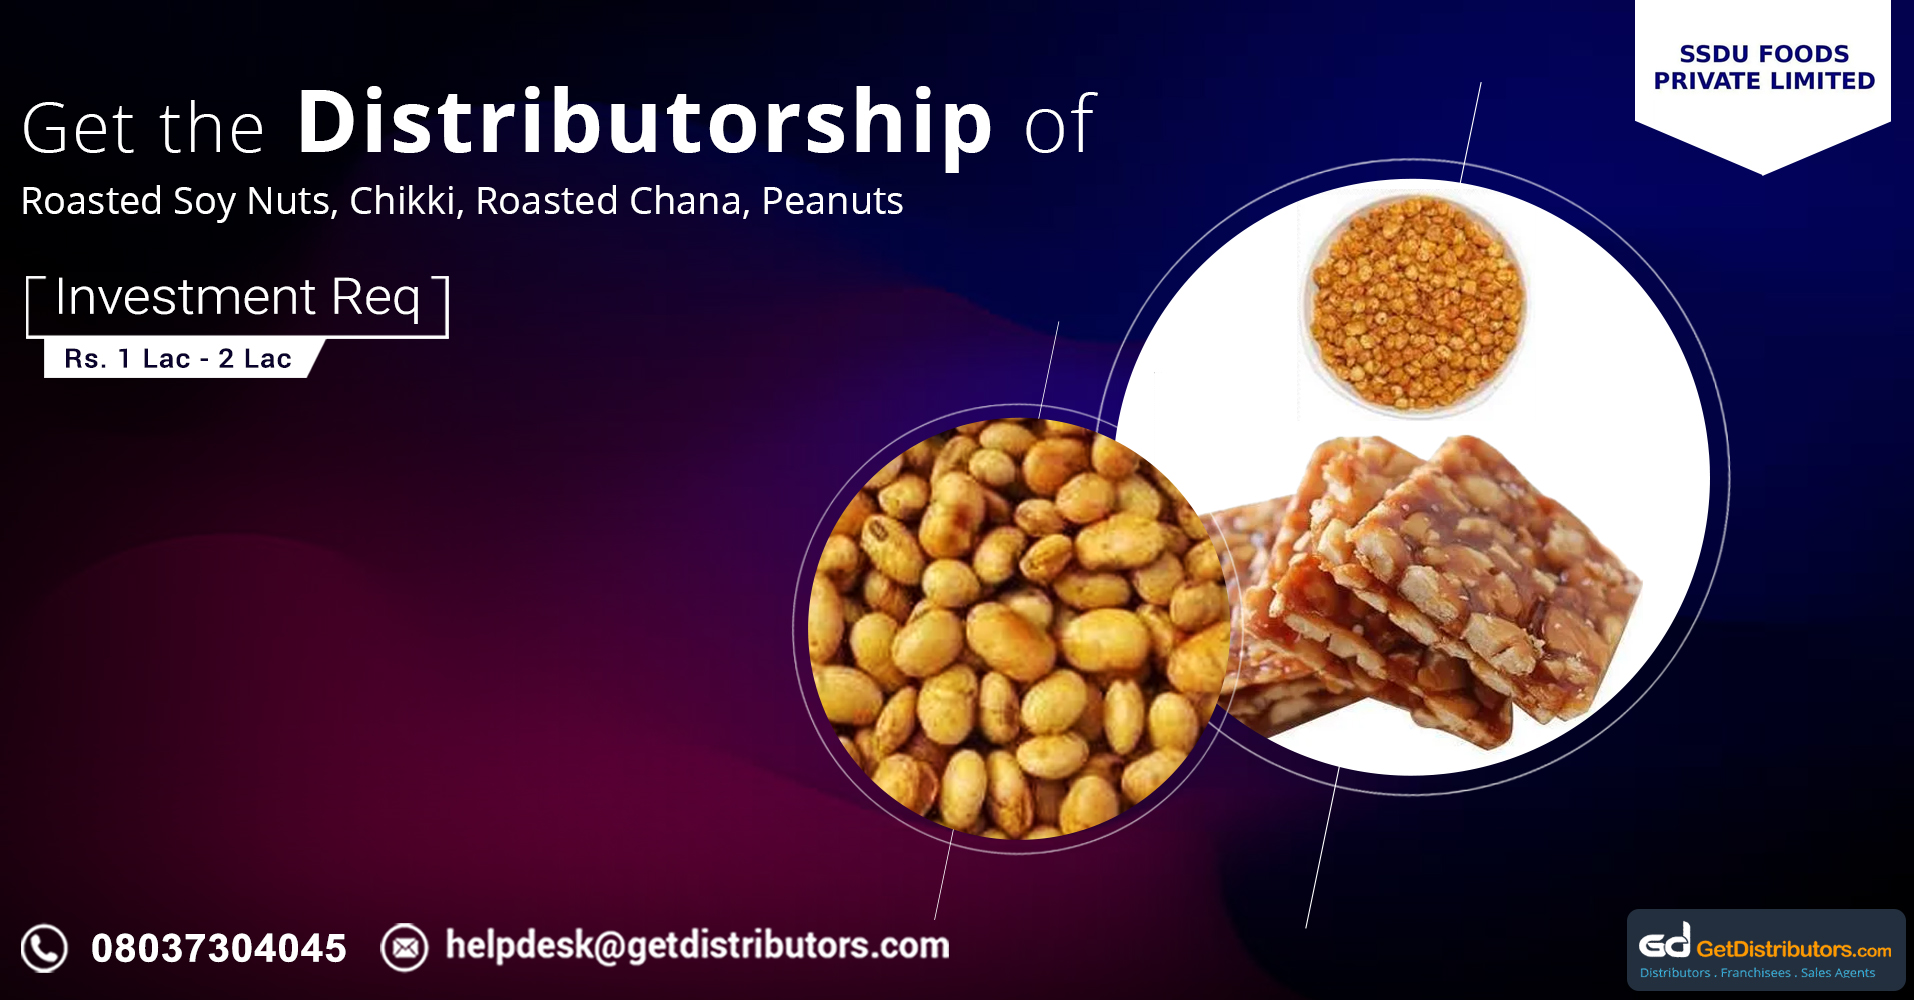 Extensive range of delectable Indian snacks for distribution